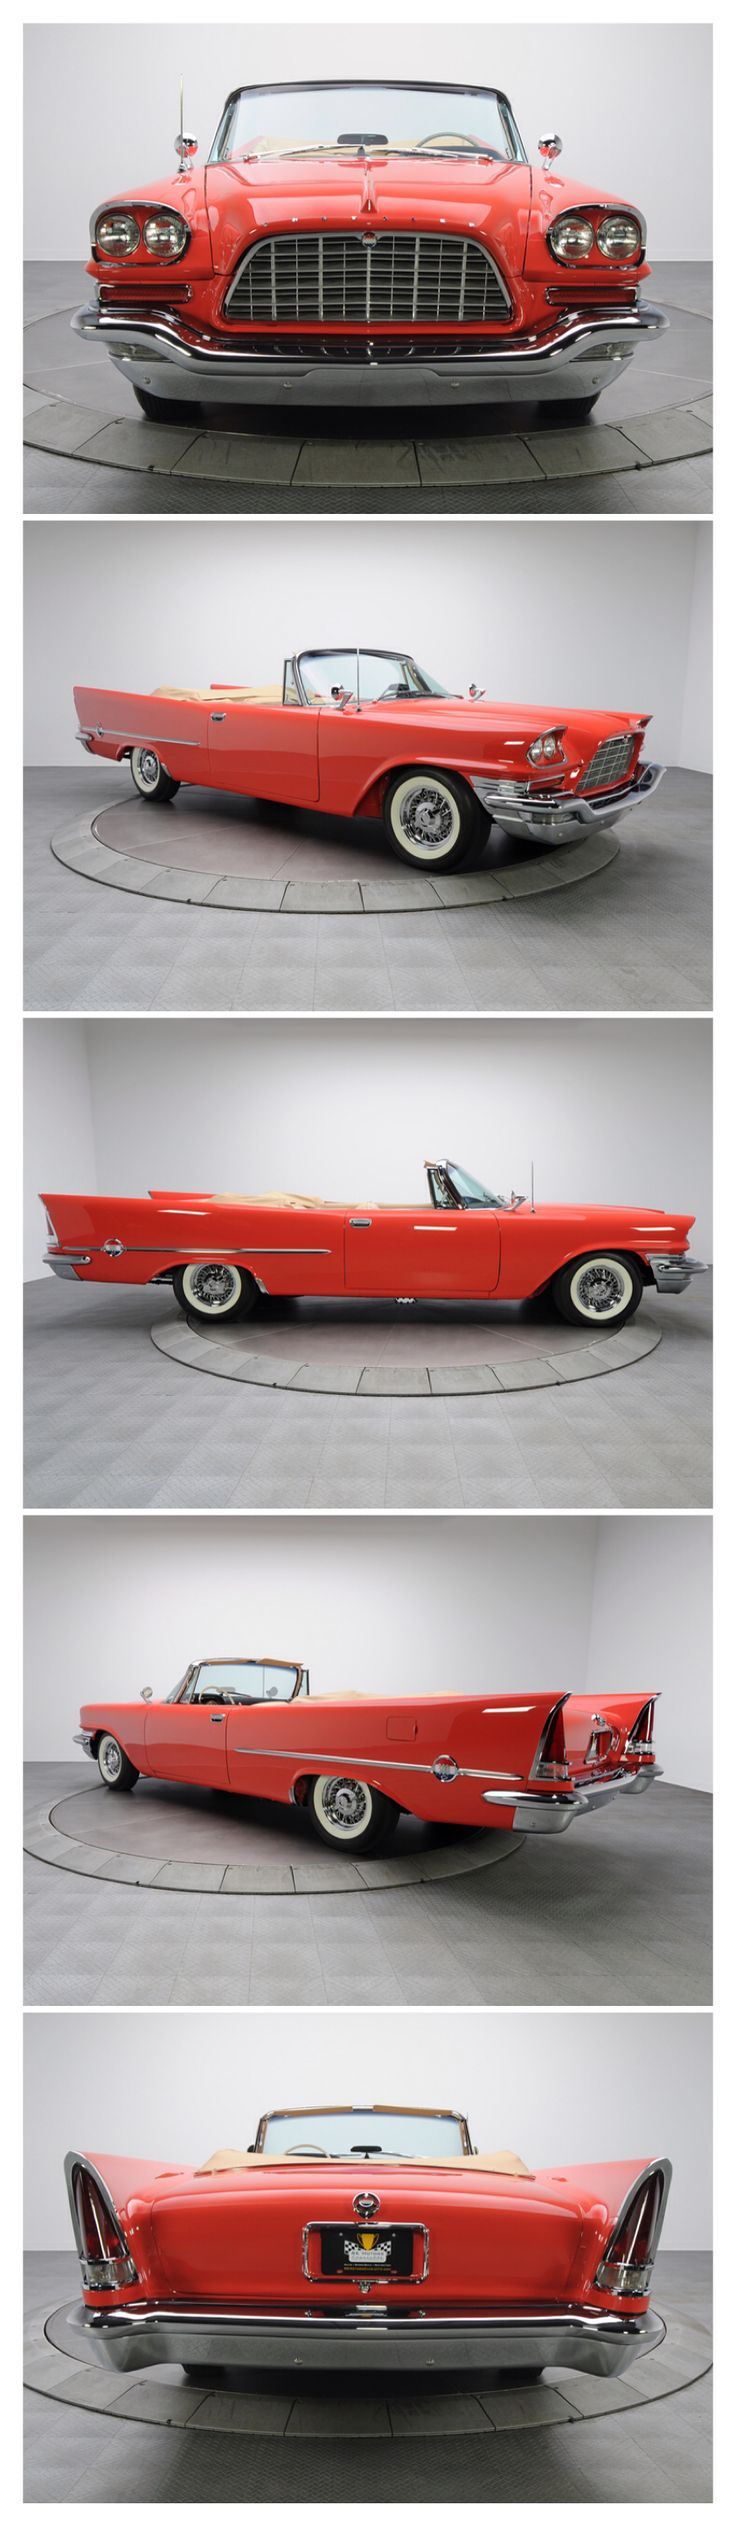 The exciting brand new street legal cruser sport elec car amp golf cart - 1957 Chrysler Hemi Convertible With An Automatic Transmission Ram Induction Carburation And A Hemi Engine